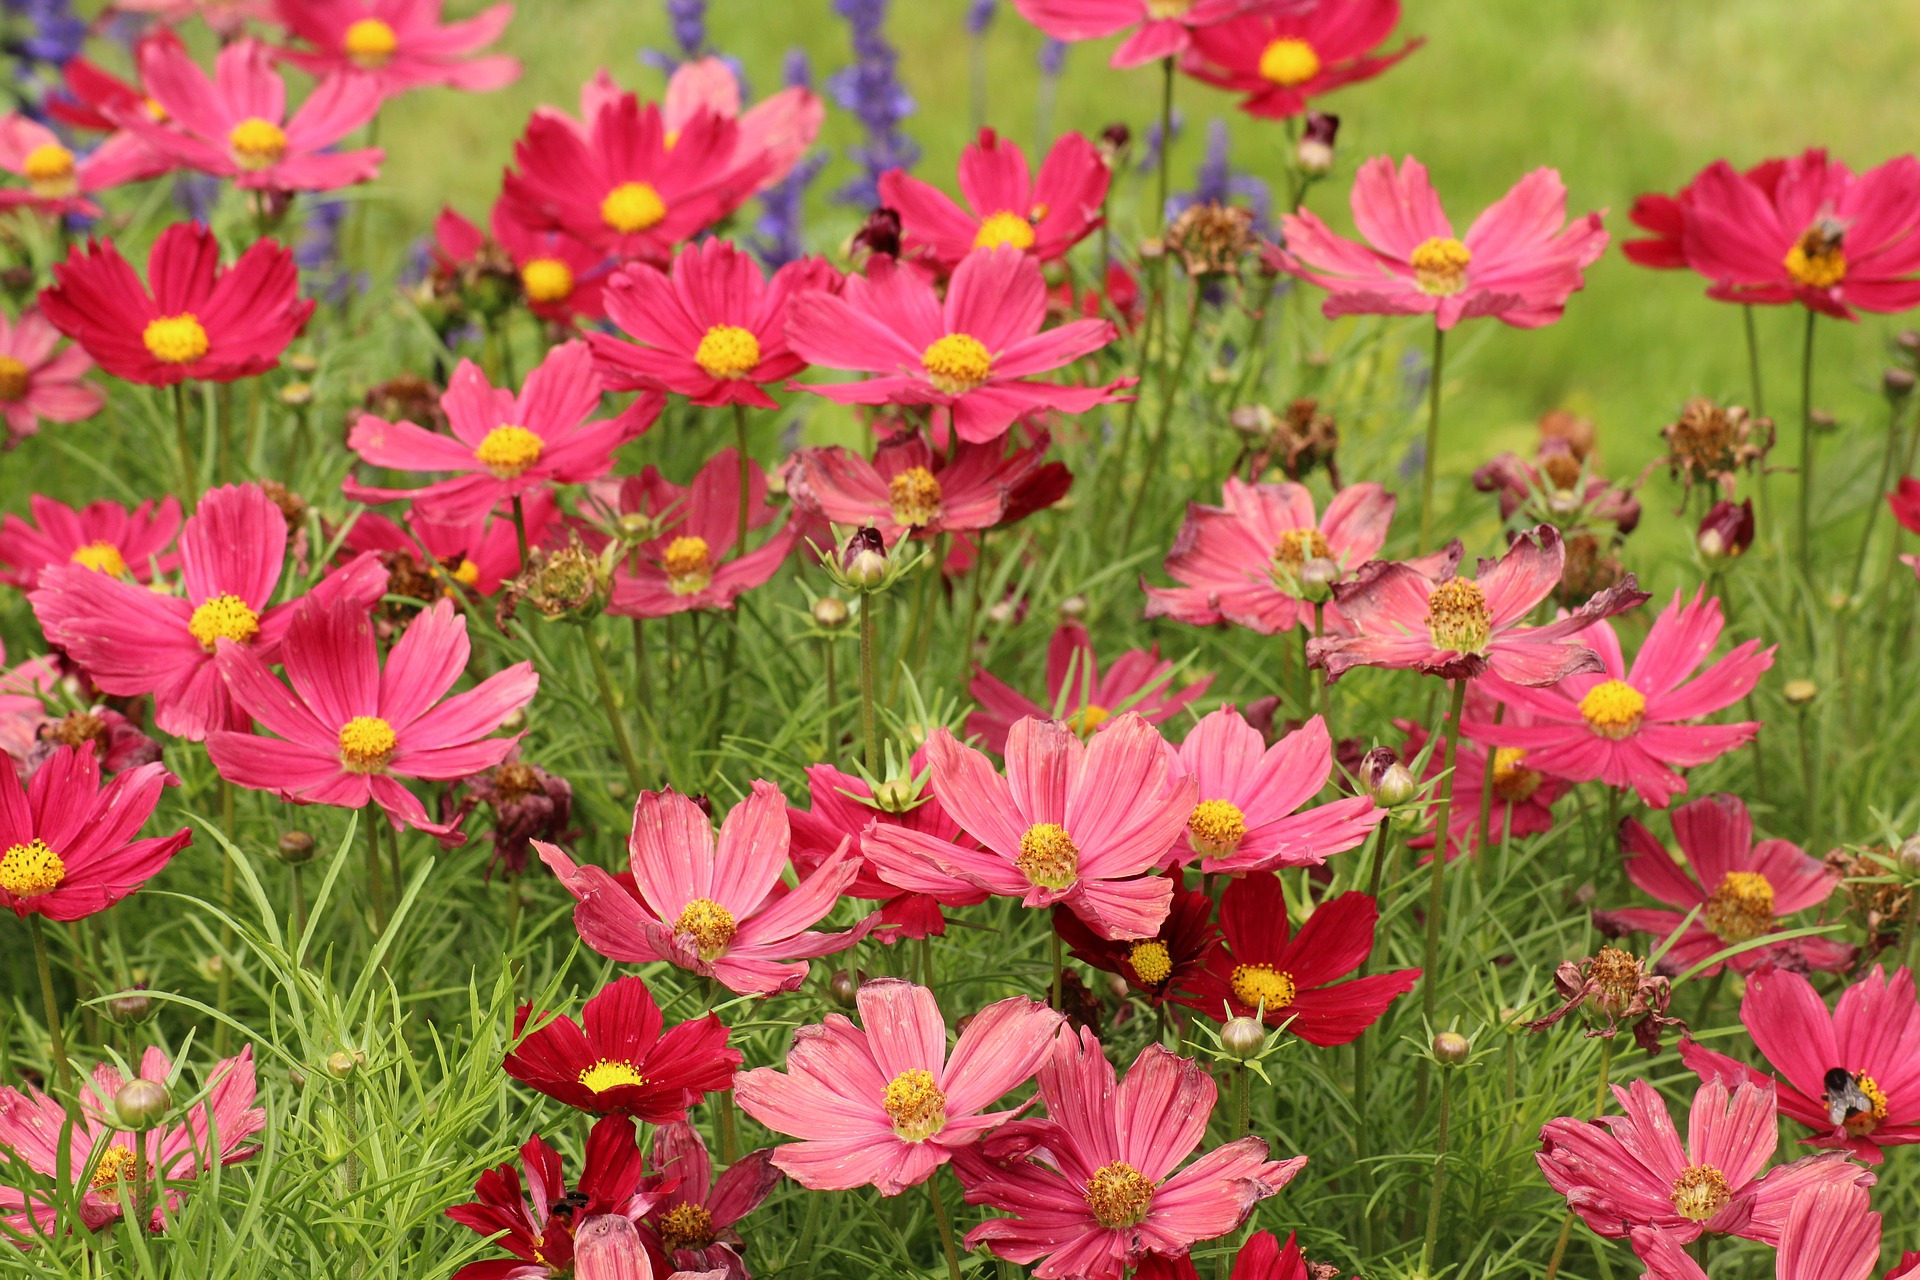 cosmos flower - top 10 flowers that attract butterflies and hummingbirds